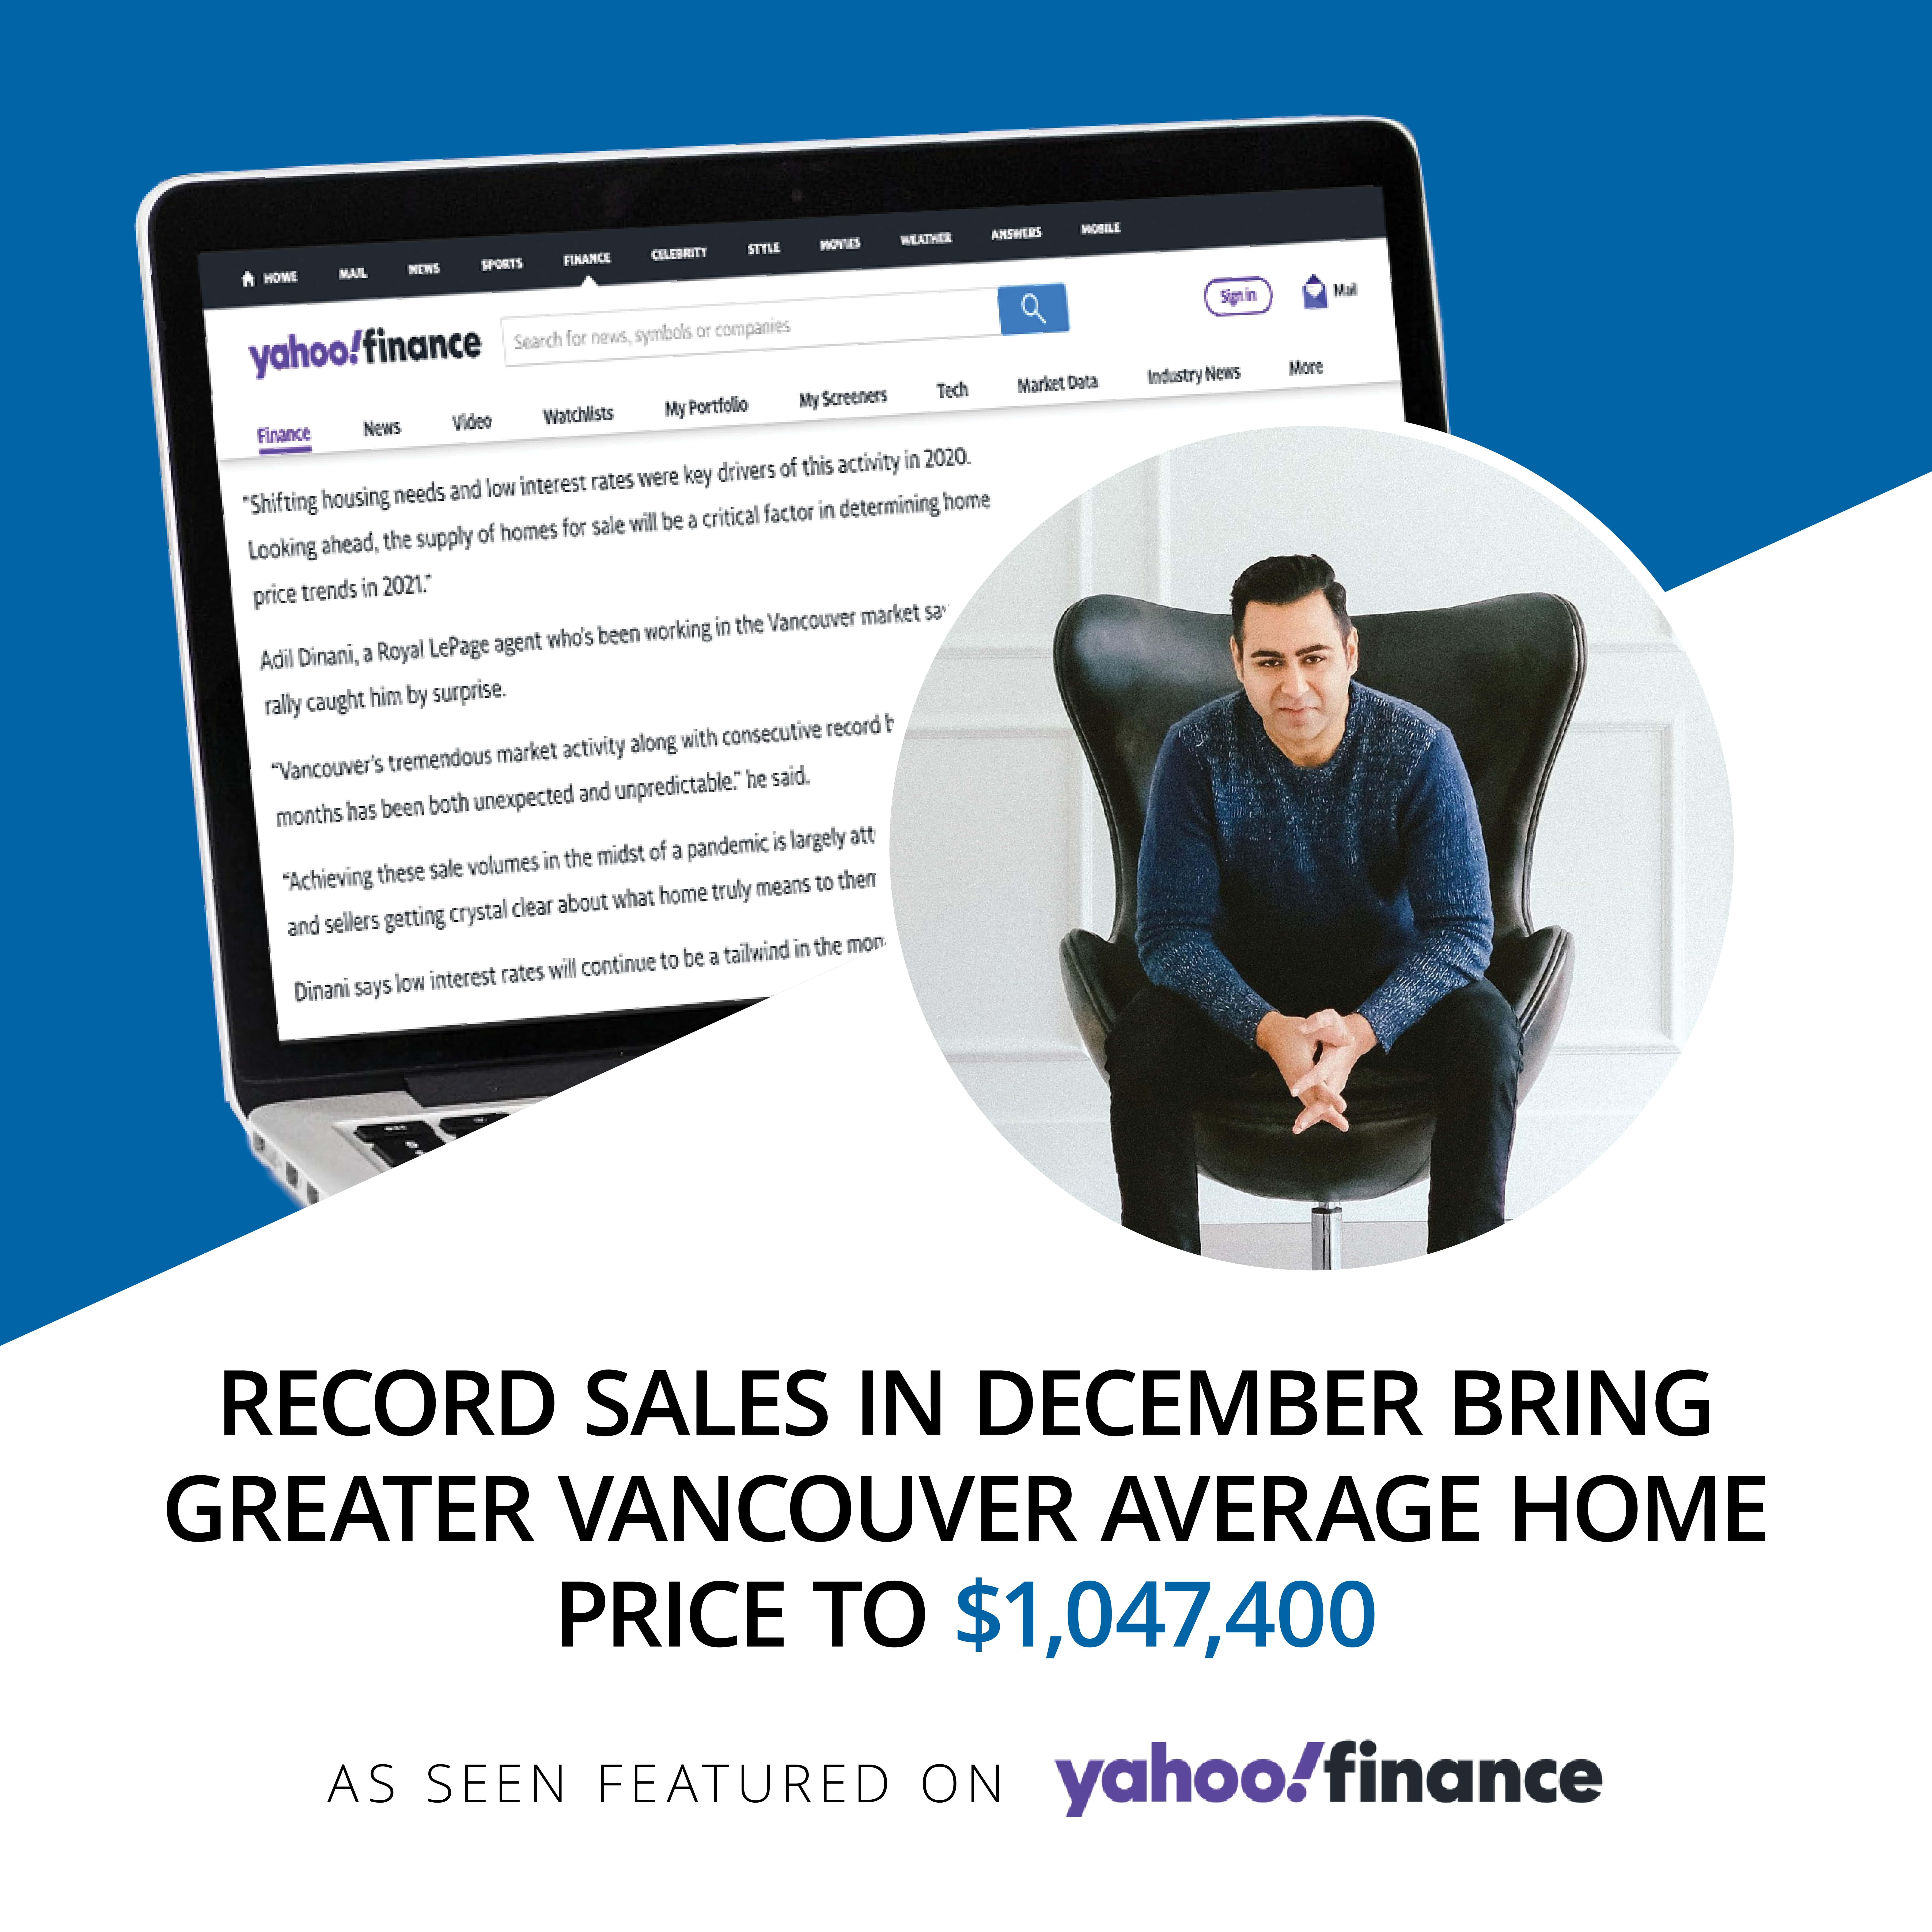 Yahoo! finance: Adil discusses record sales in Vancouver with Jessy Bains, Jan 5, 2021